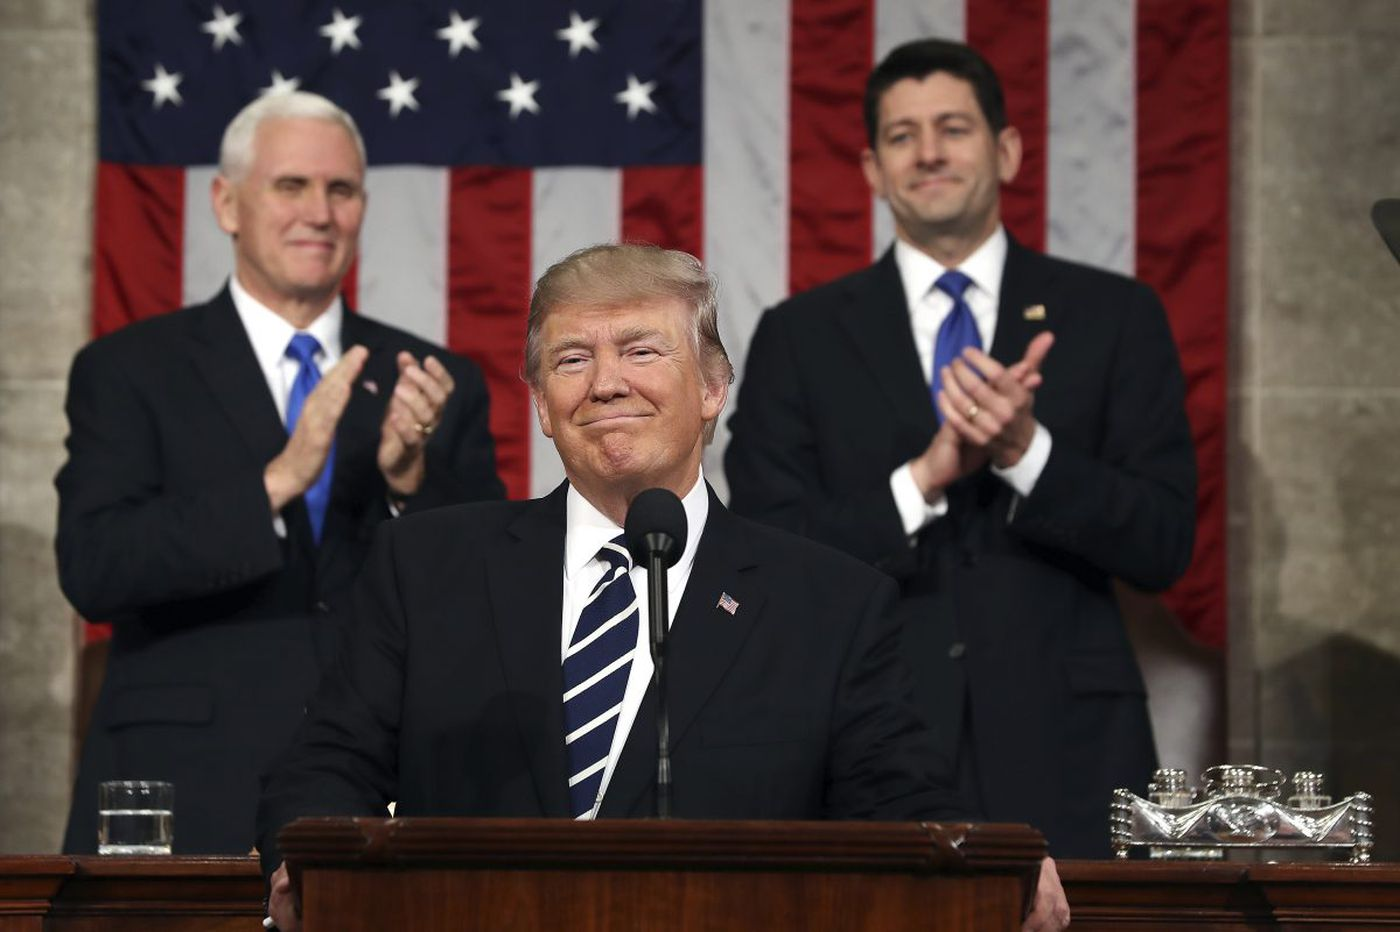 Donald Trump's State of the Union: Let's hope for a lasting message and not a fleeting tweet | Editorial